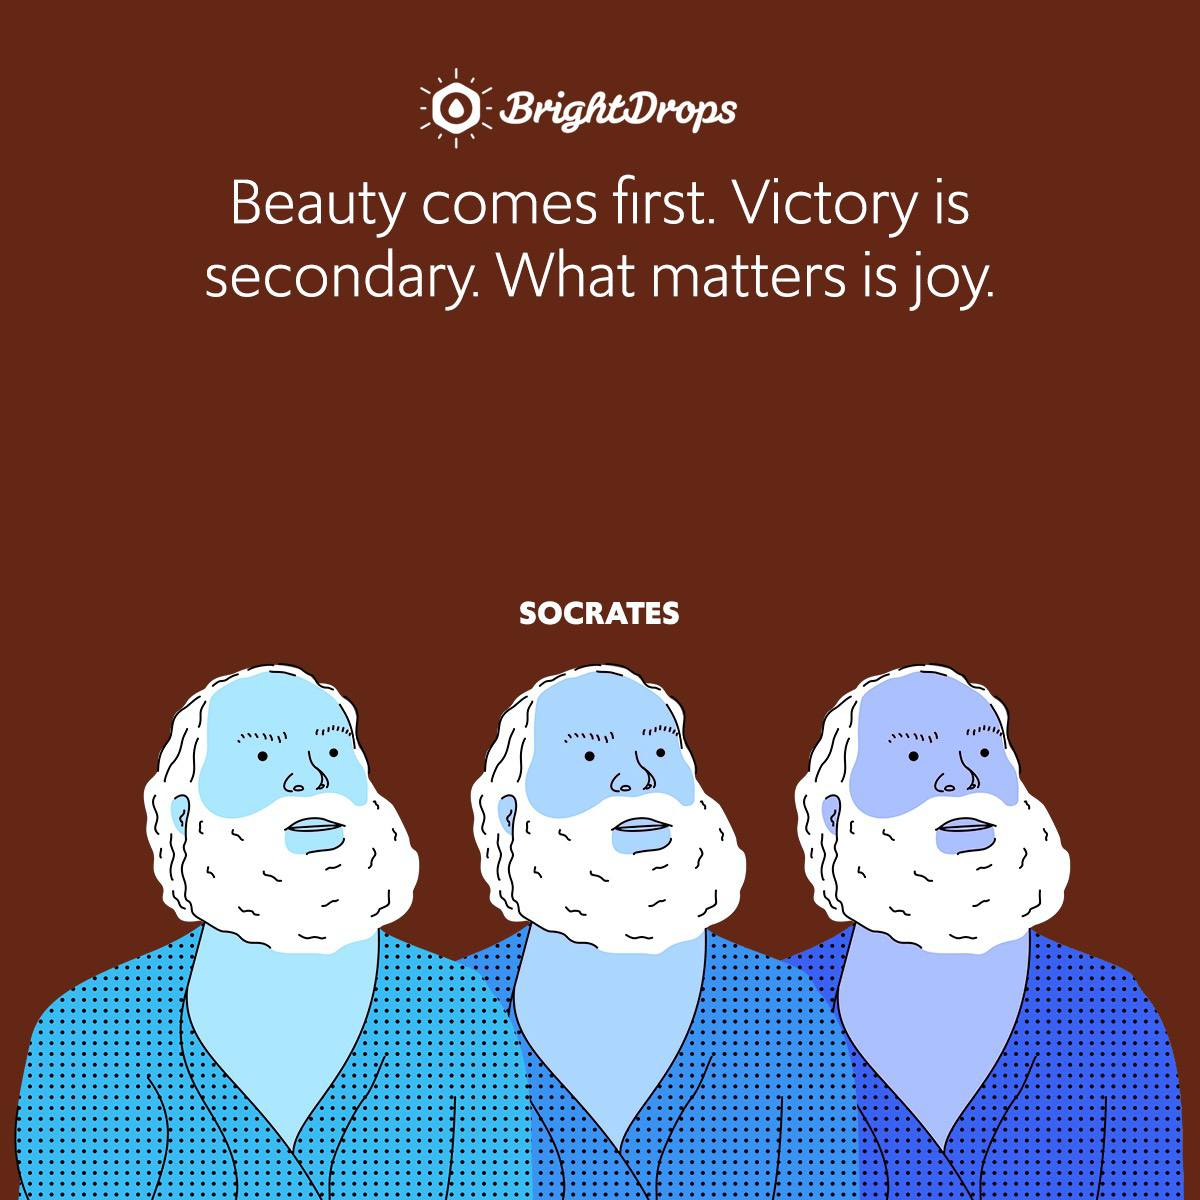 Beauty comes first. Victory is secondary. What matters is joy.